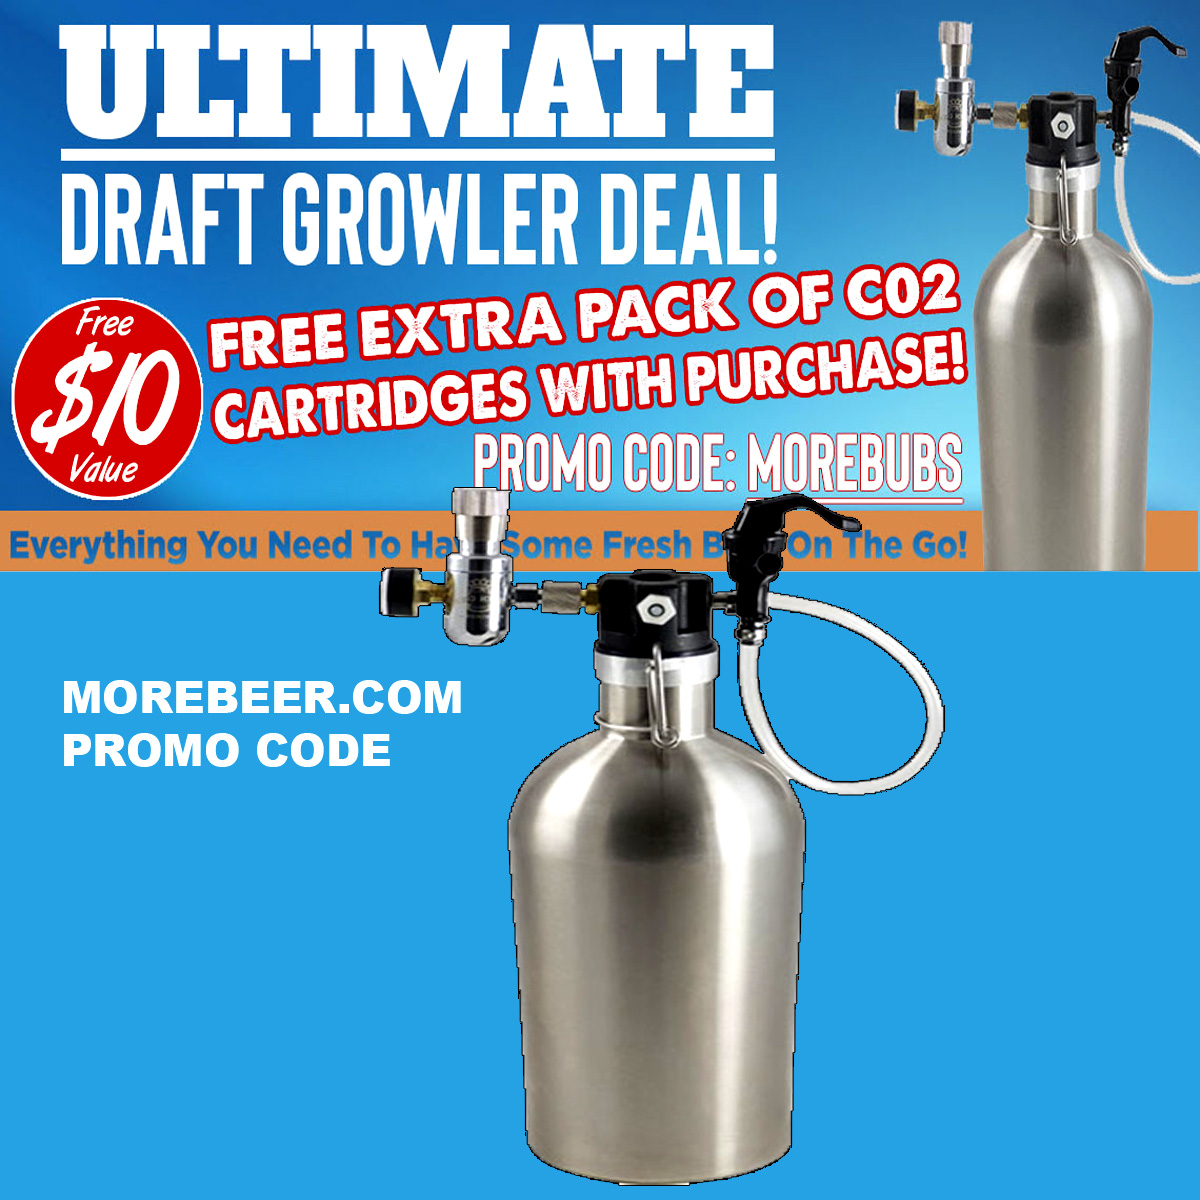 MoreBeer Get A Free Extra Pack Of CO2 Cartridges with the Purchase Of Ultimate Draft Growler MoreBeer.com Promo Code Coupon Code